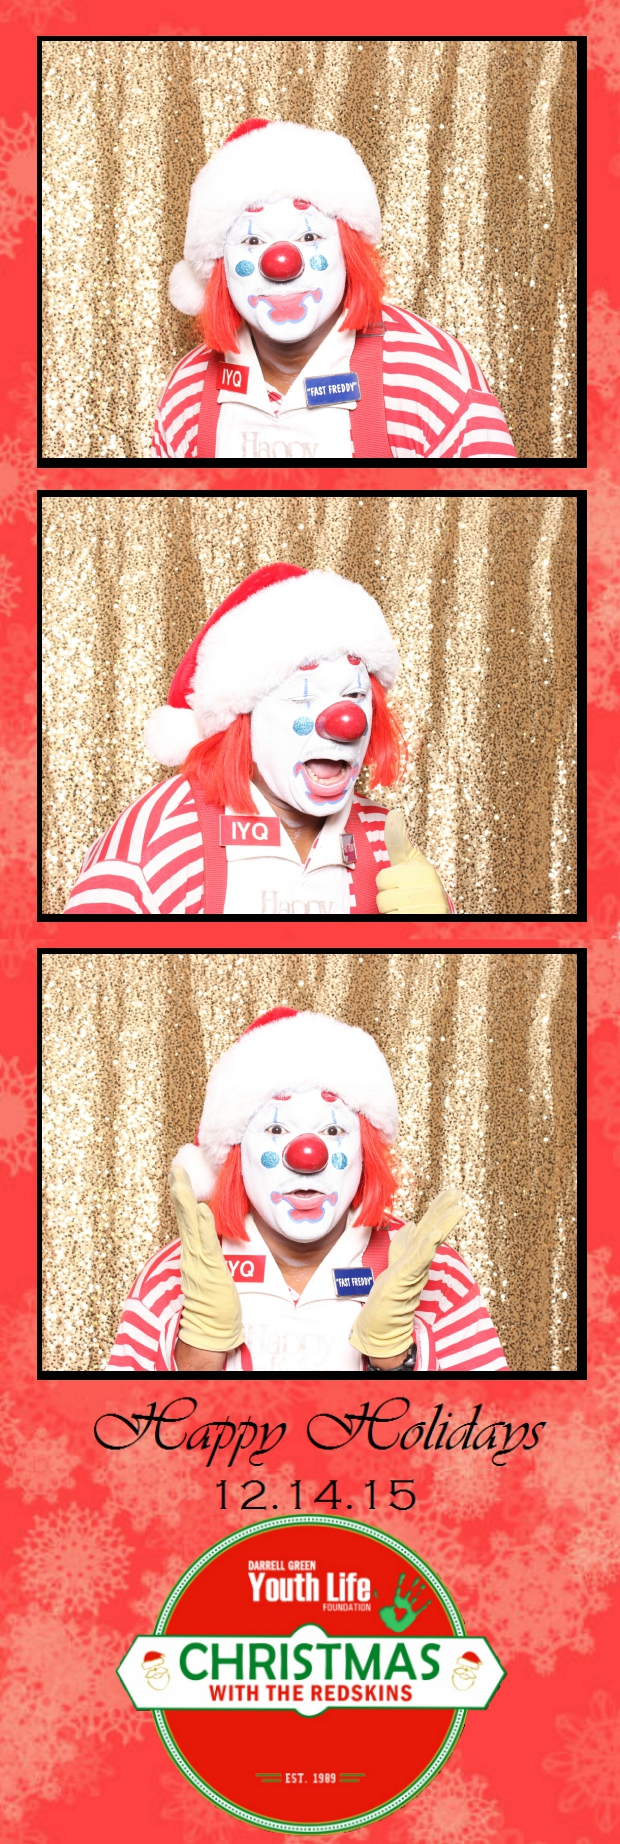 Guest House Events Photo Booth DGYLF Strips (63).jpg